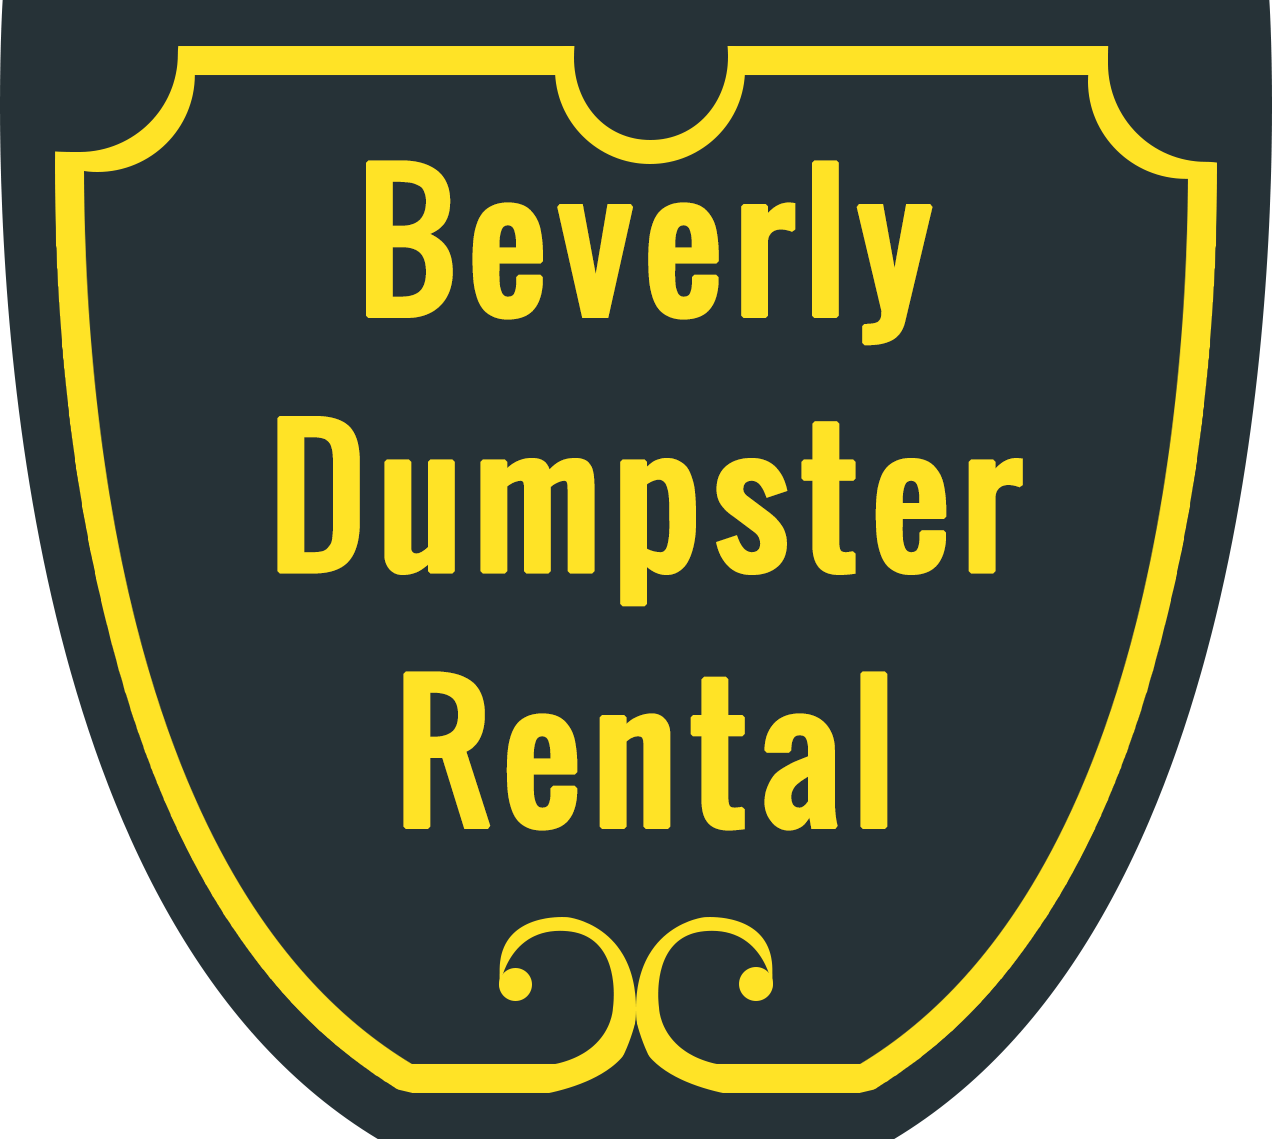 dumpster rental beverly hills